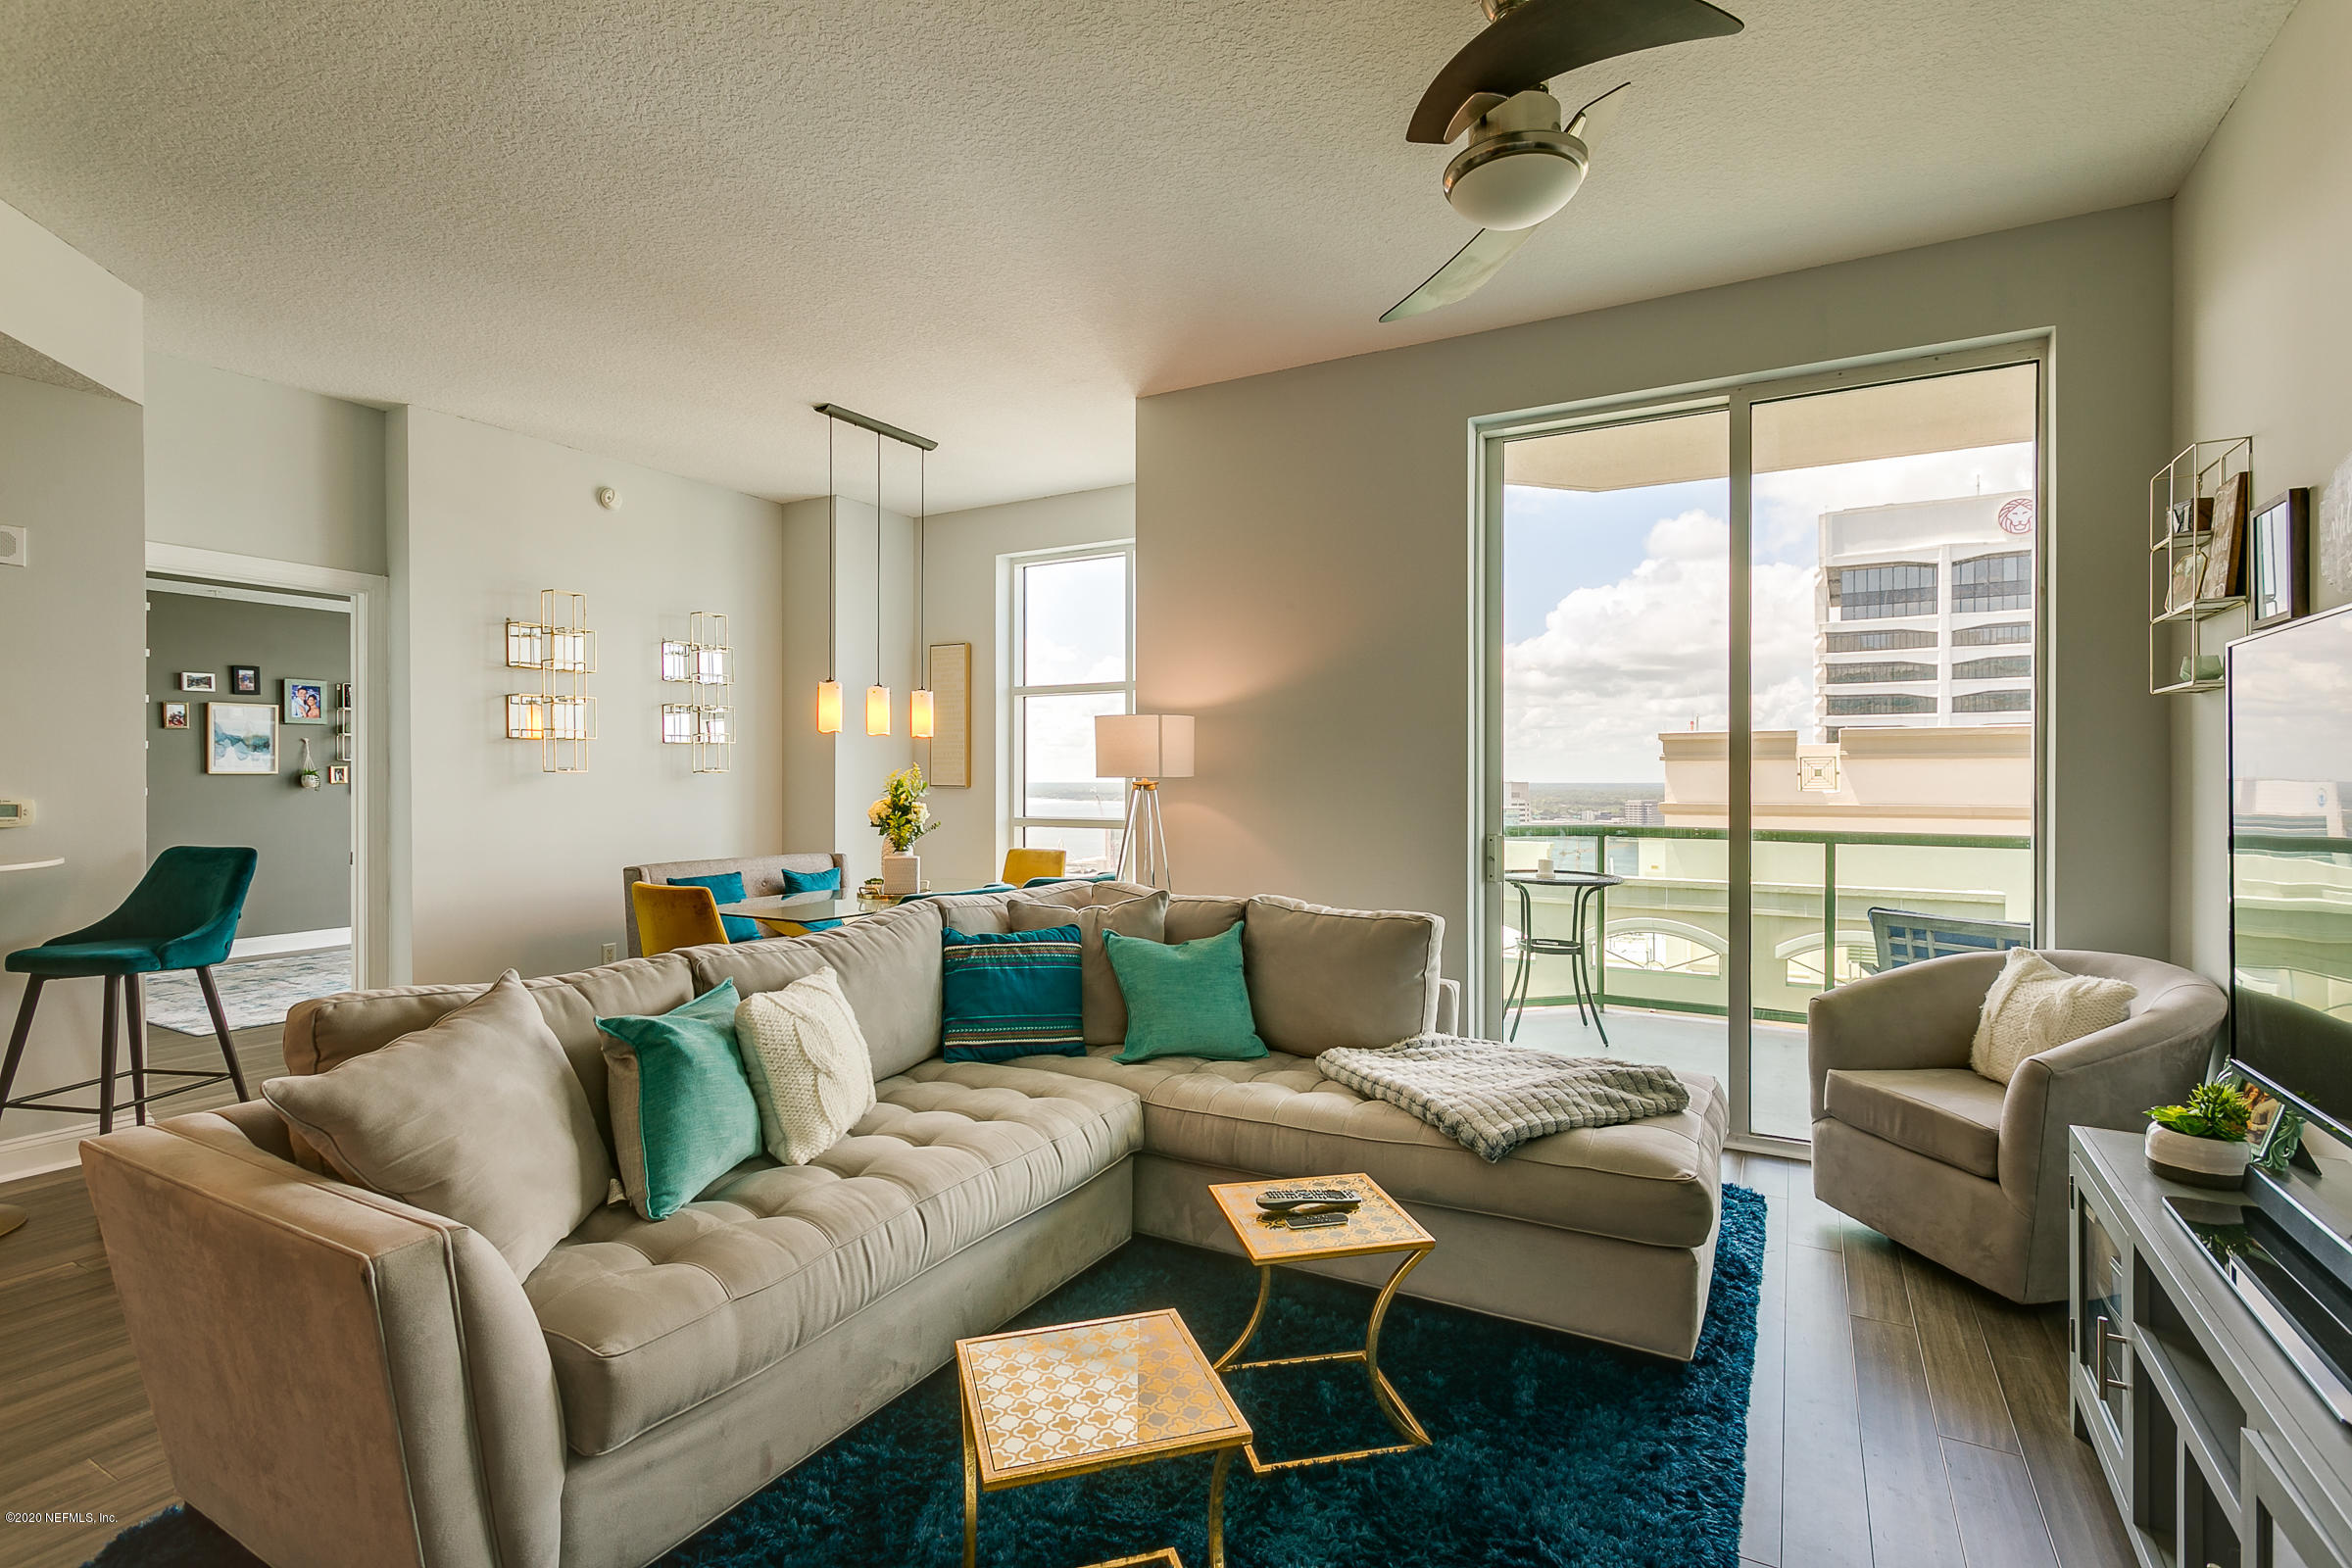 1431 RIVERPLACE, JACKSONVILLE, FLORIDA 32207, 2 Bedrooms Bedrooms, ,2 BathroomsBathrooms,Rental,For Rent,RIVERPLACE,1080952